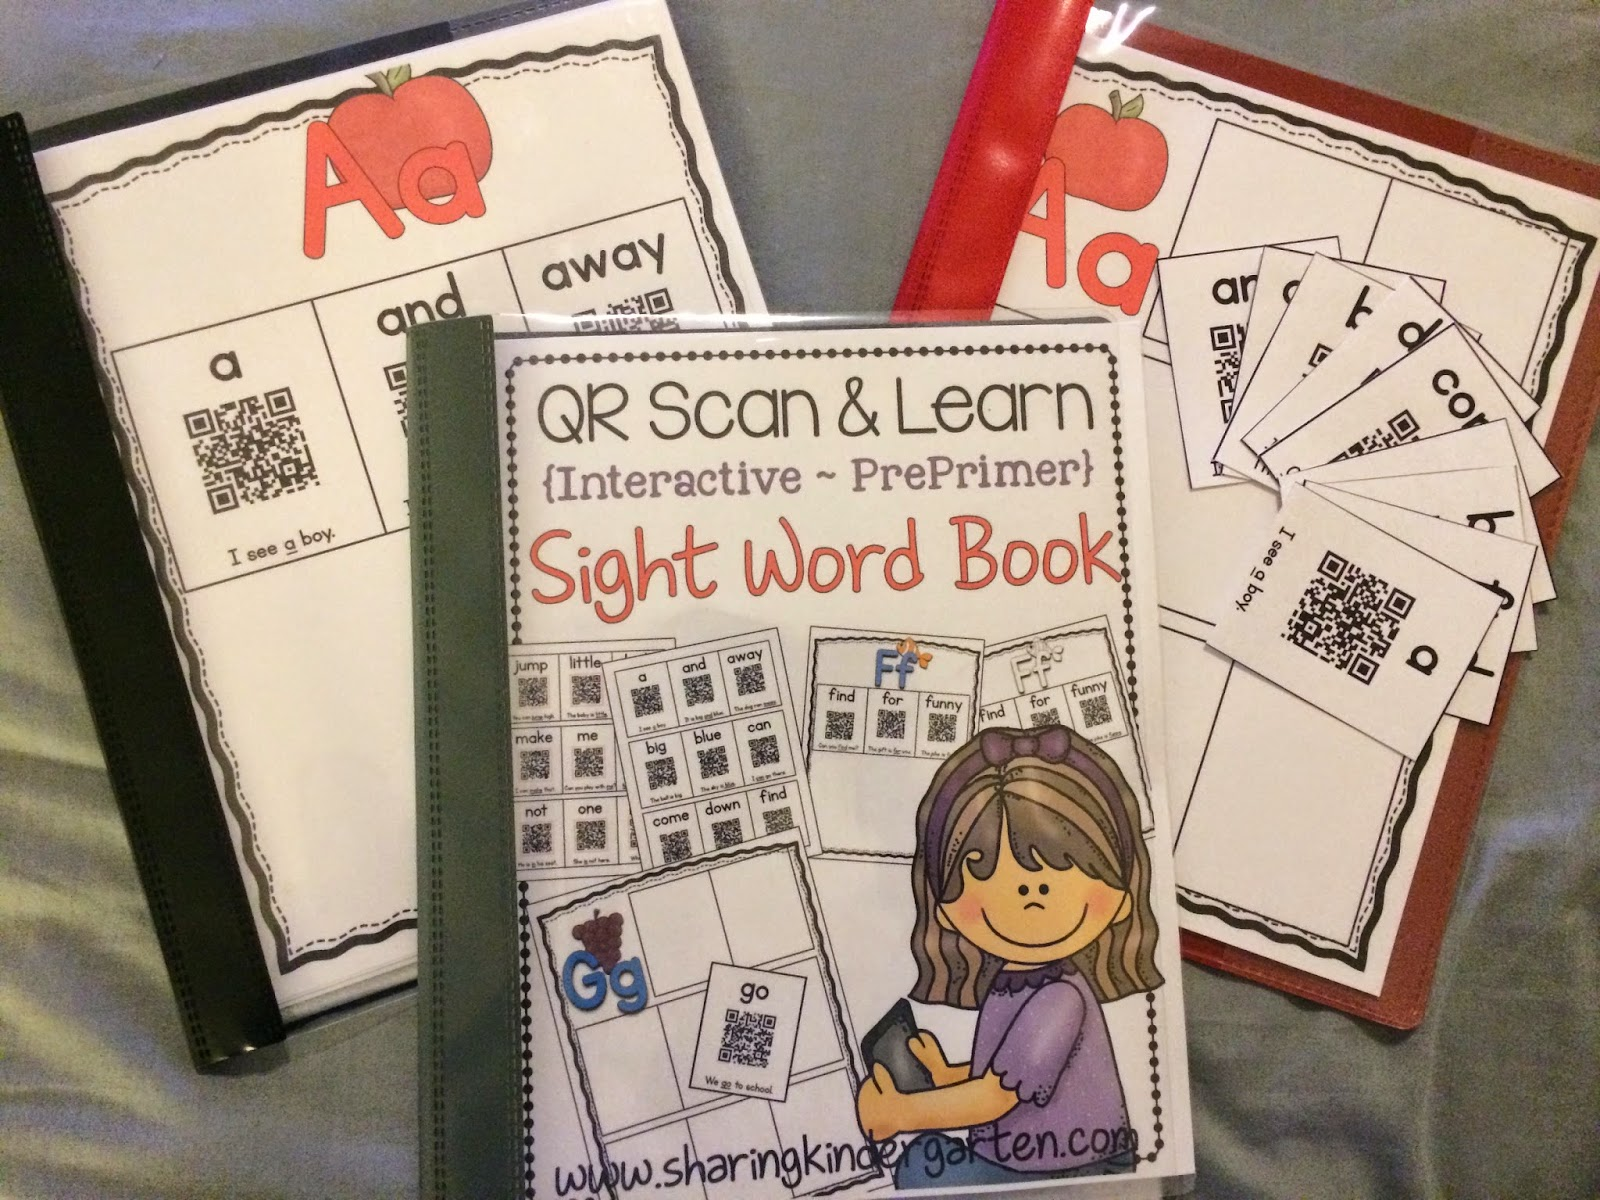 http://www.teacherspayteachers.com/Product/QR-Scan-Learn-Interactive-Sight-Word-Book-PrePrimer-1304797